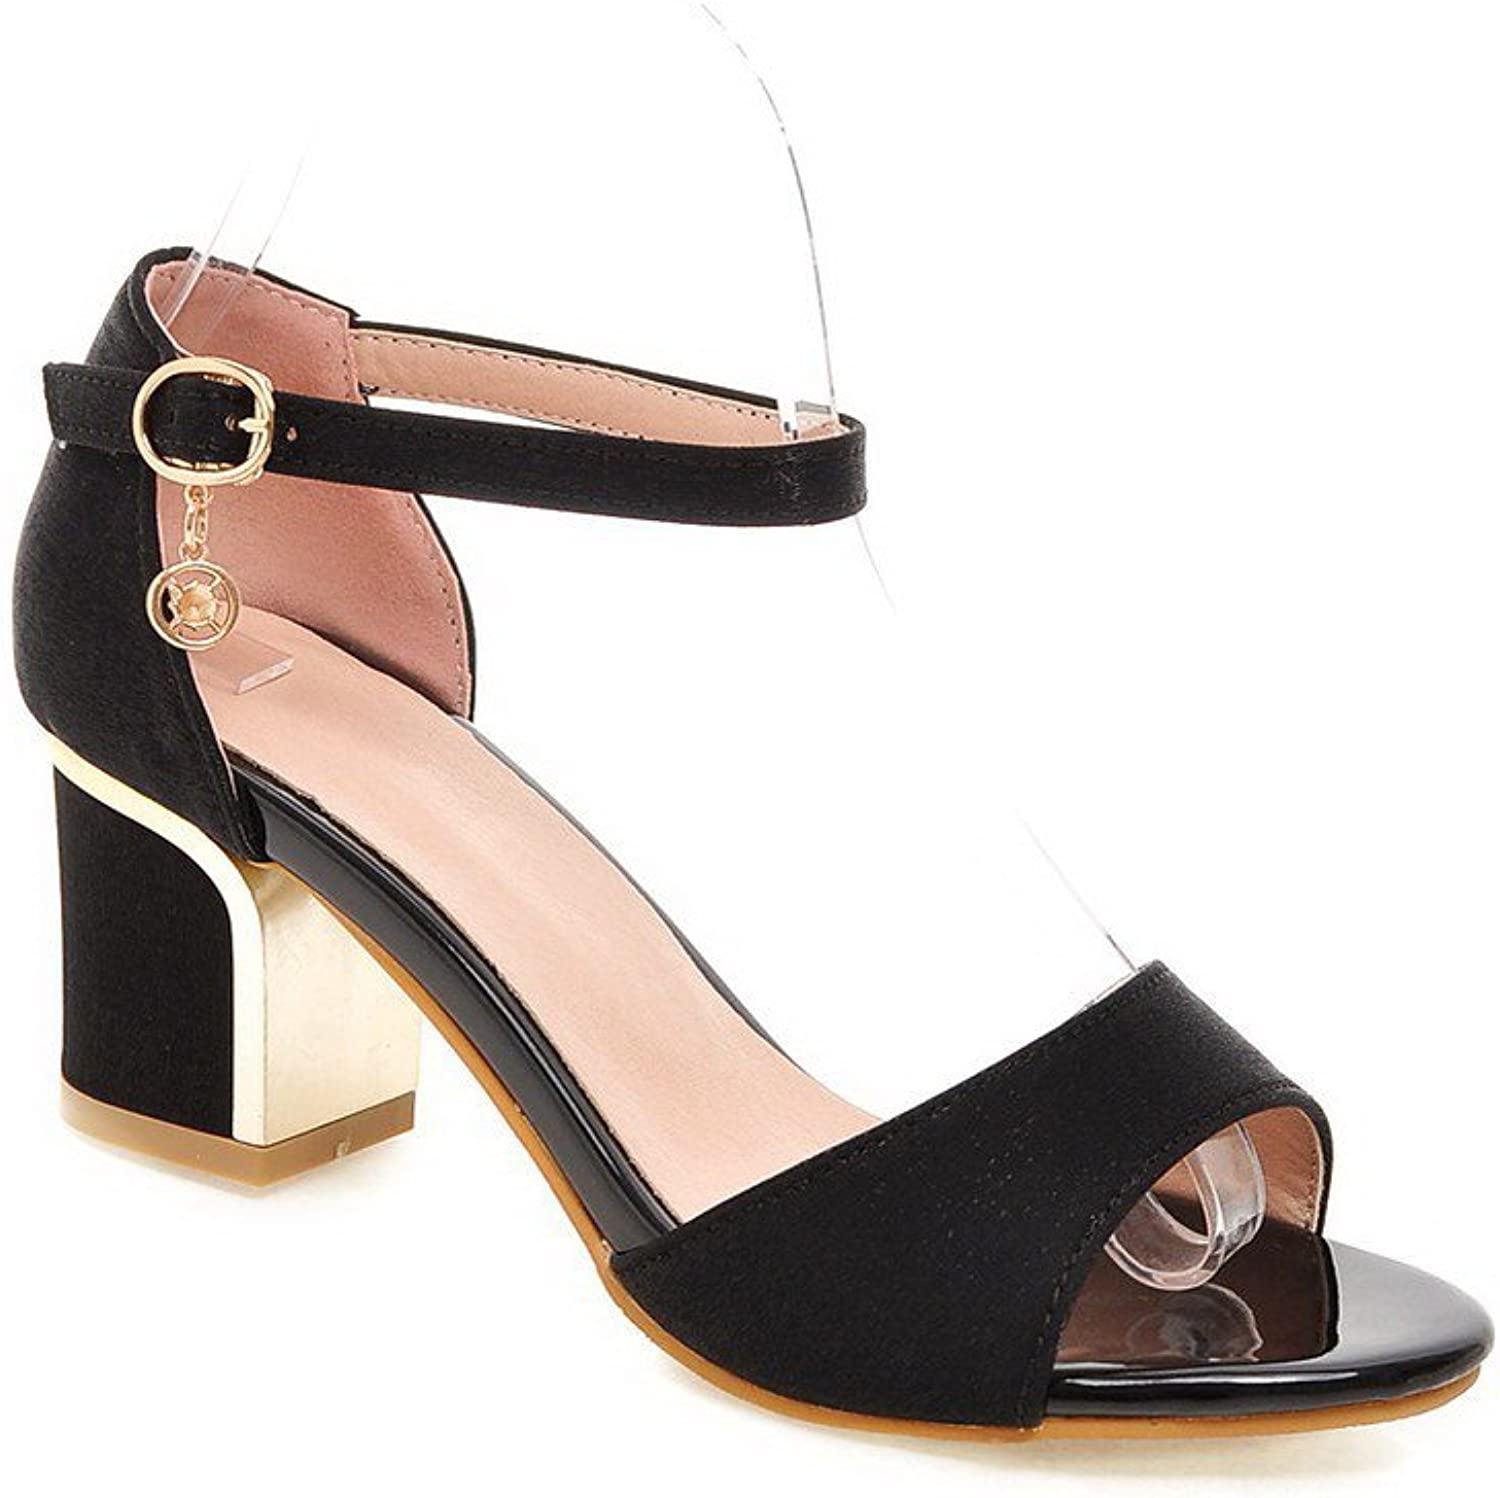 AmoonyFashion Women's Soft Material Buckle Open Toe Kitten-Heels Solid Sandals with Charms